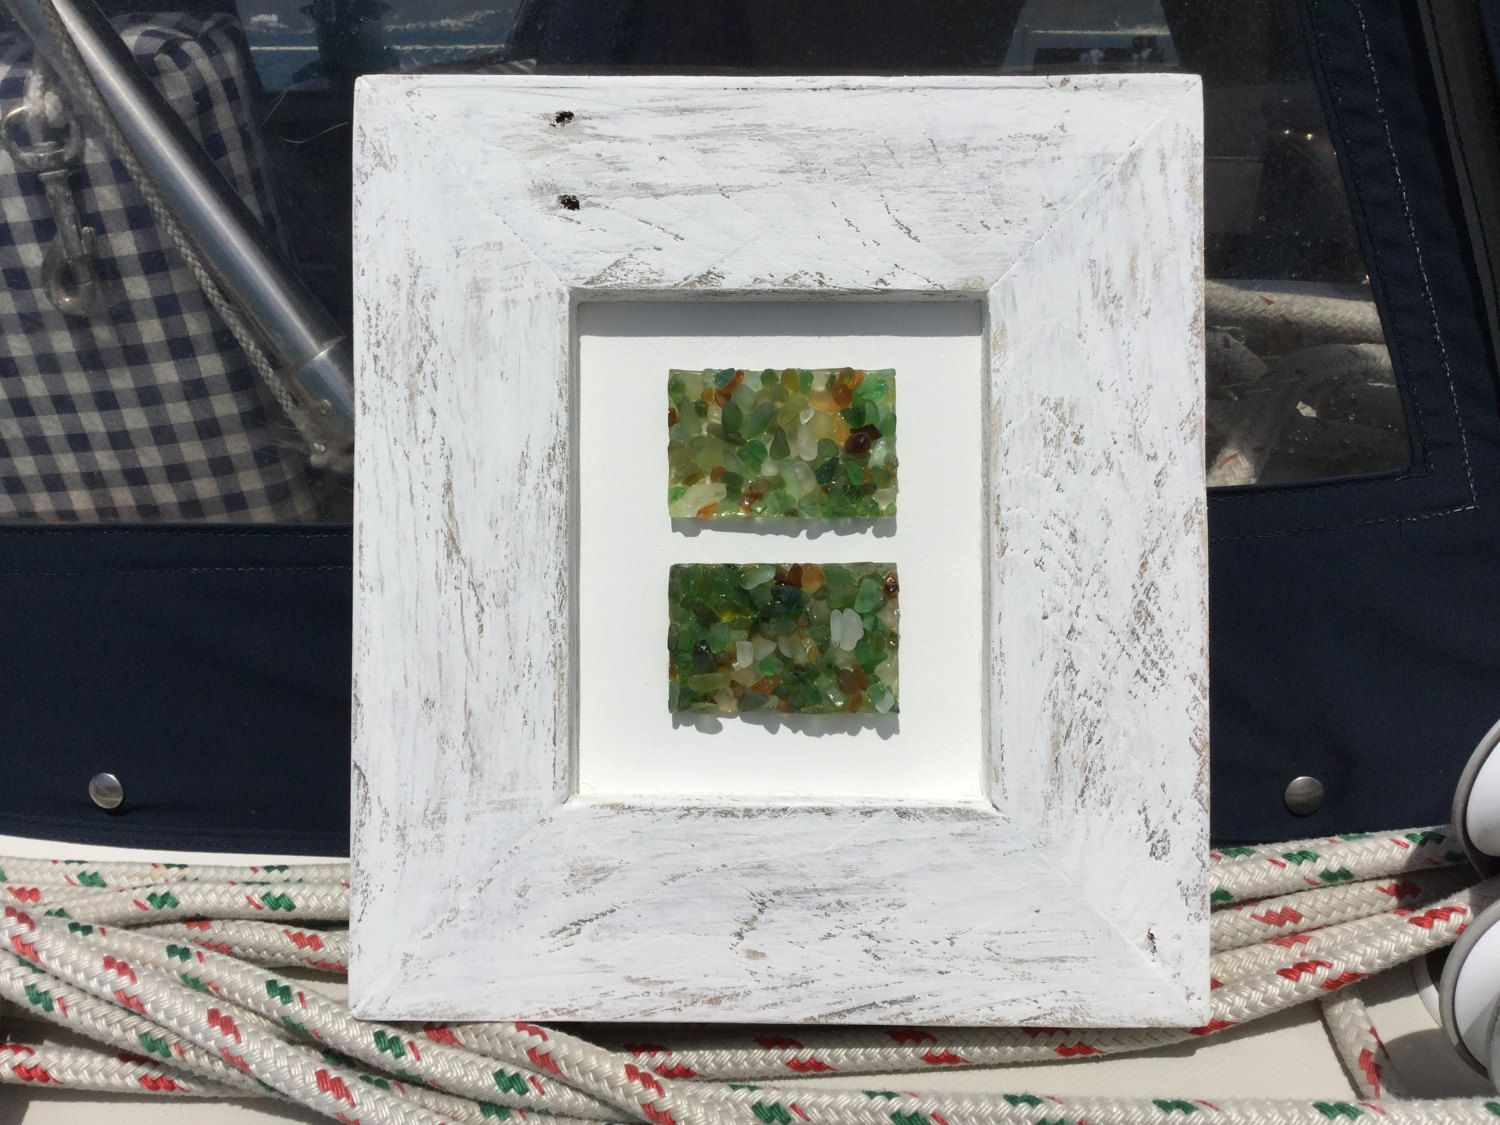 Framed Sea Glass Collection in Whitewashed Rustic Open Frame. Marine ...